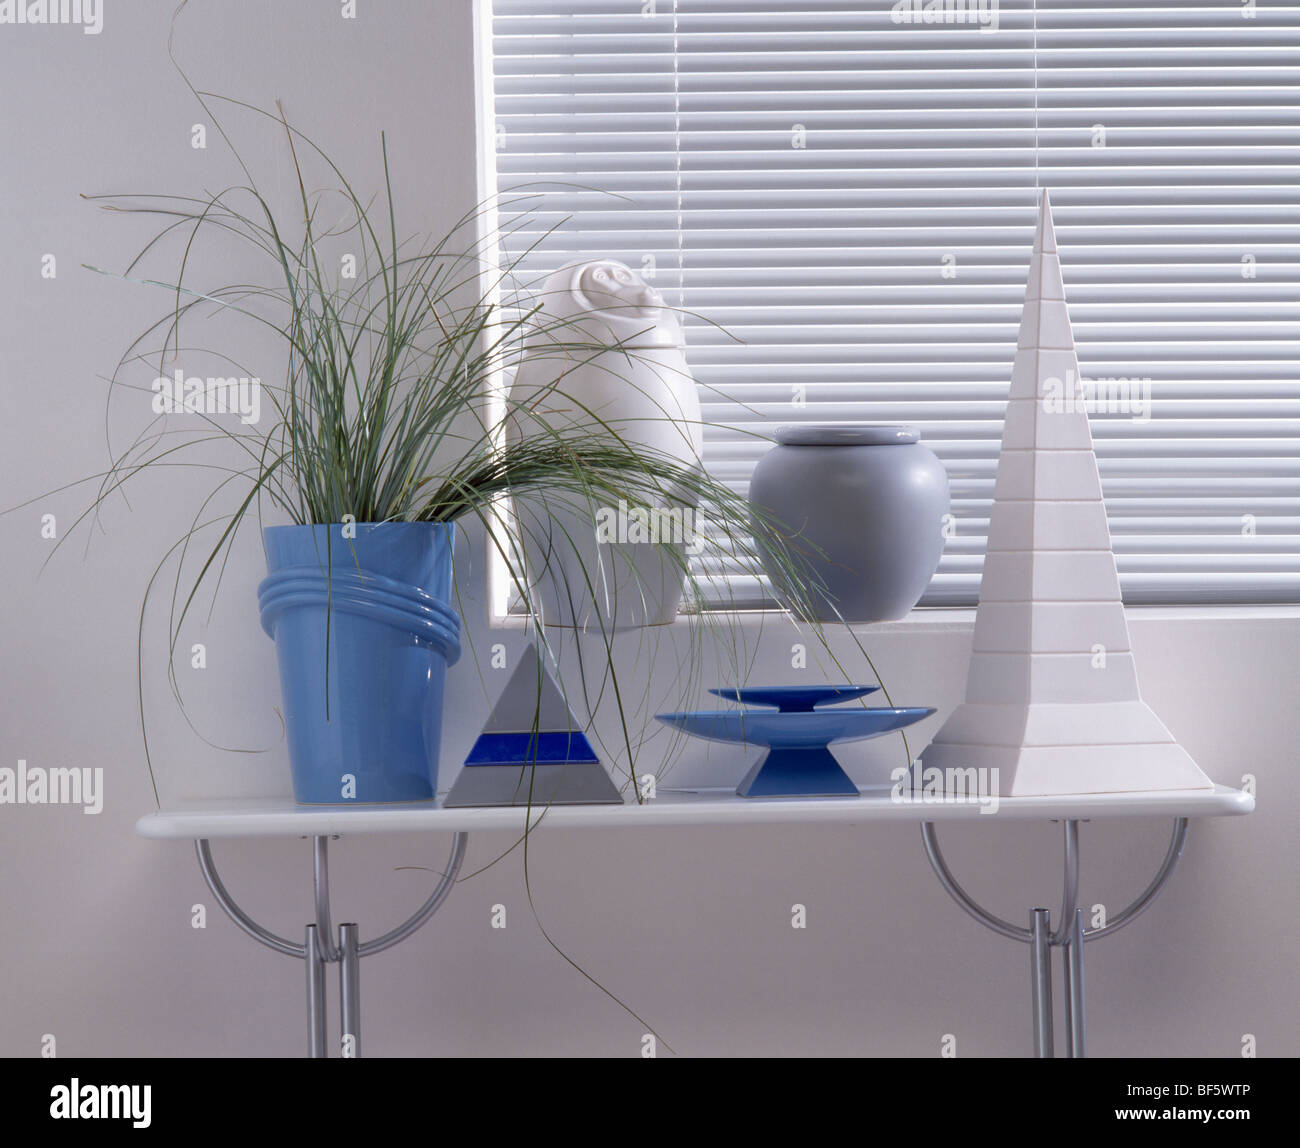 Close Up Of Blue And Silver Vases On Small White Console Table Below Window  With White Venetian Blind